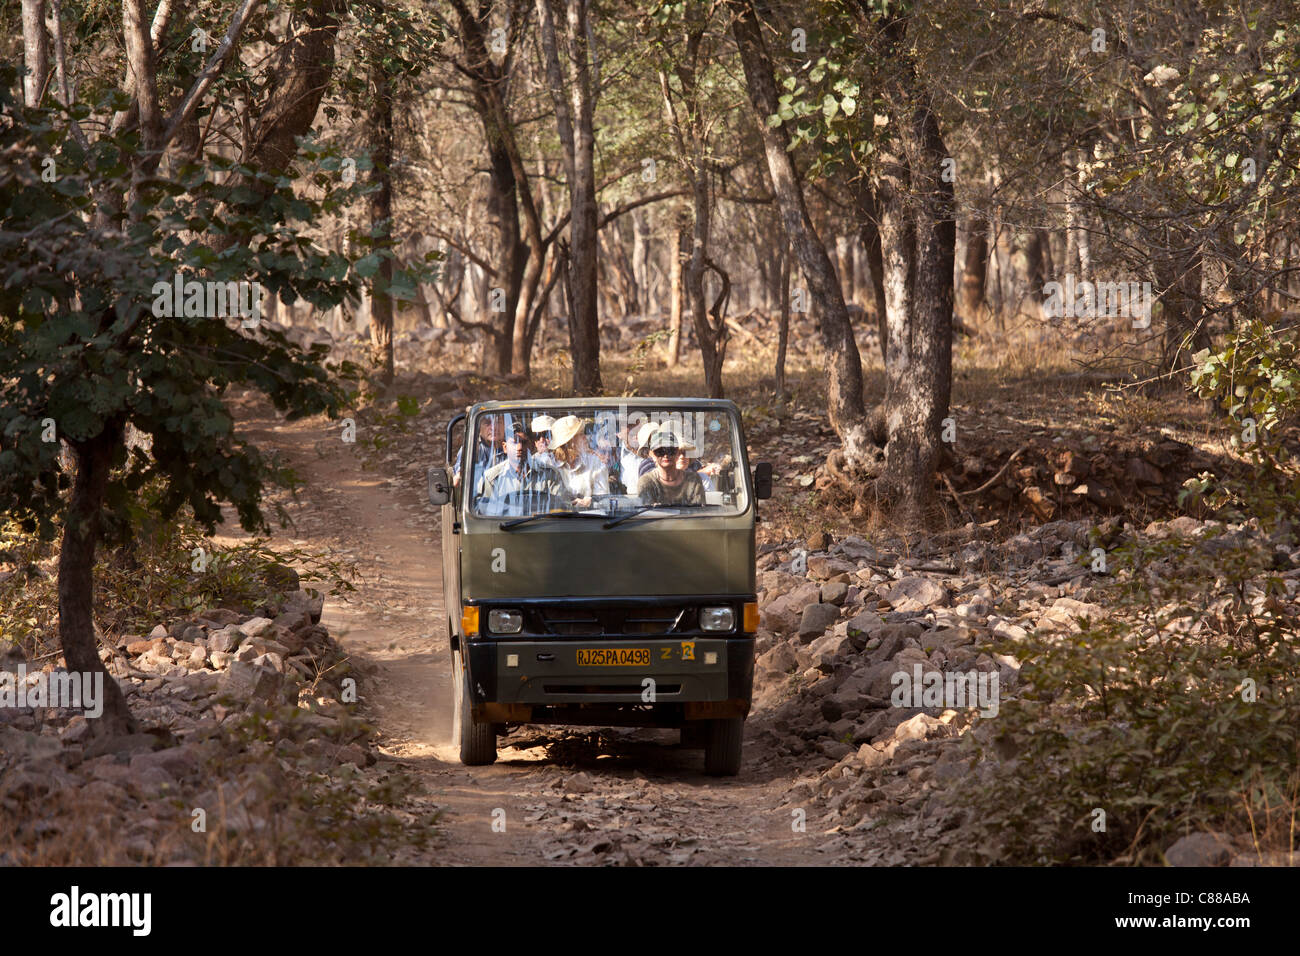 Tour group of eco-tourists in Ranthambhore National Park, Rajasthan, Northern India - Stock Image